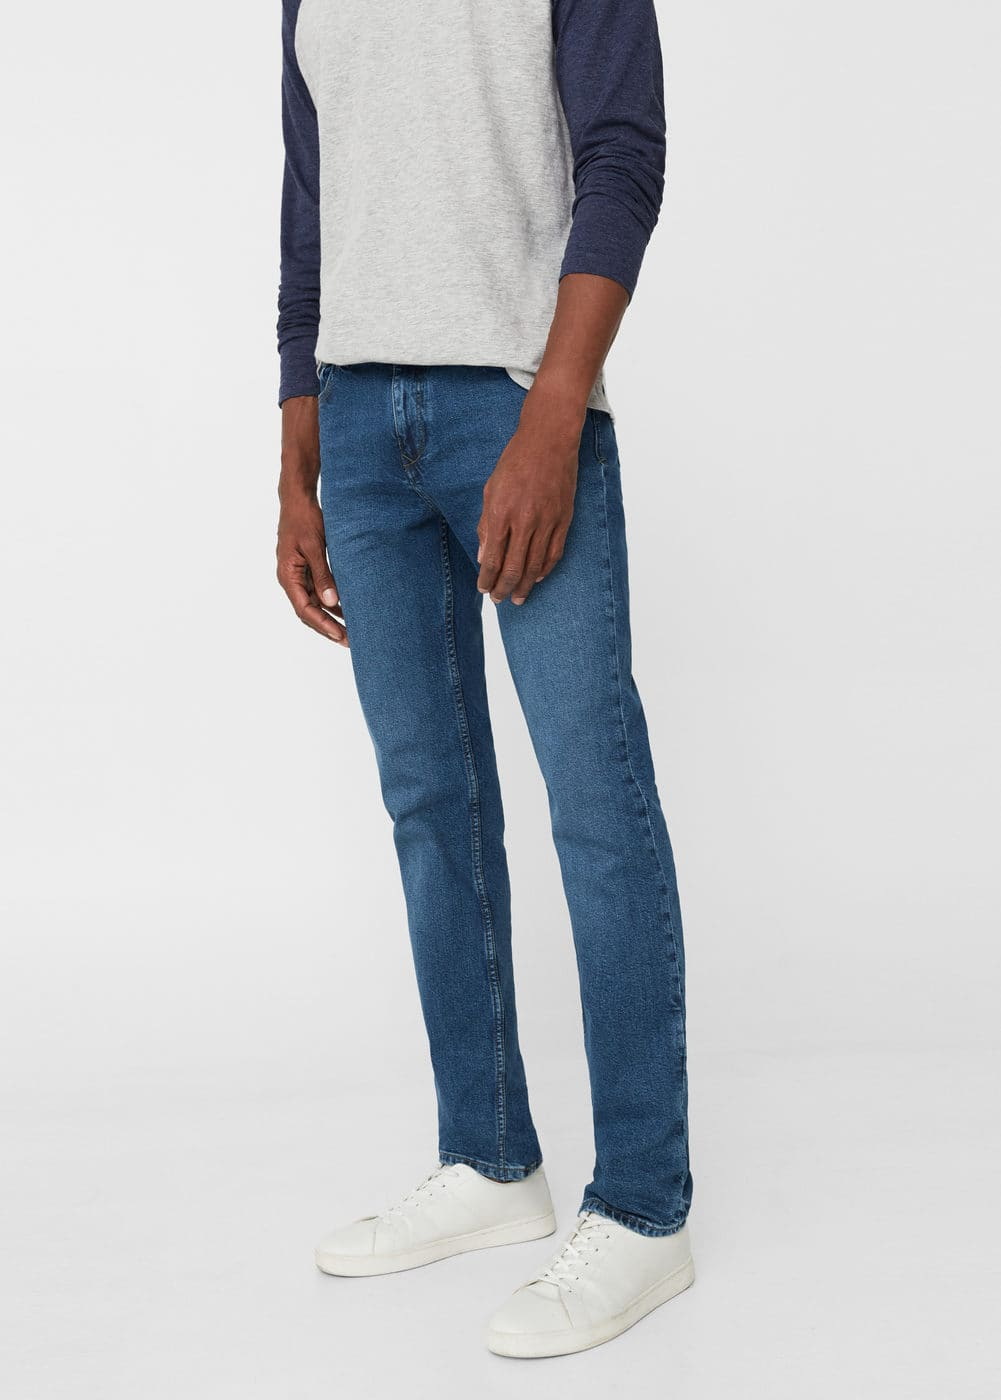 Jeans jan slim-fit lavado medio | MANGO MAN